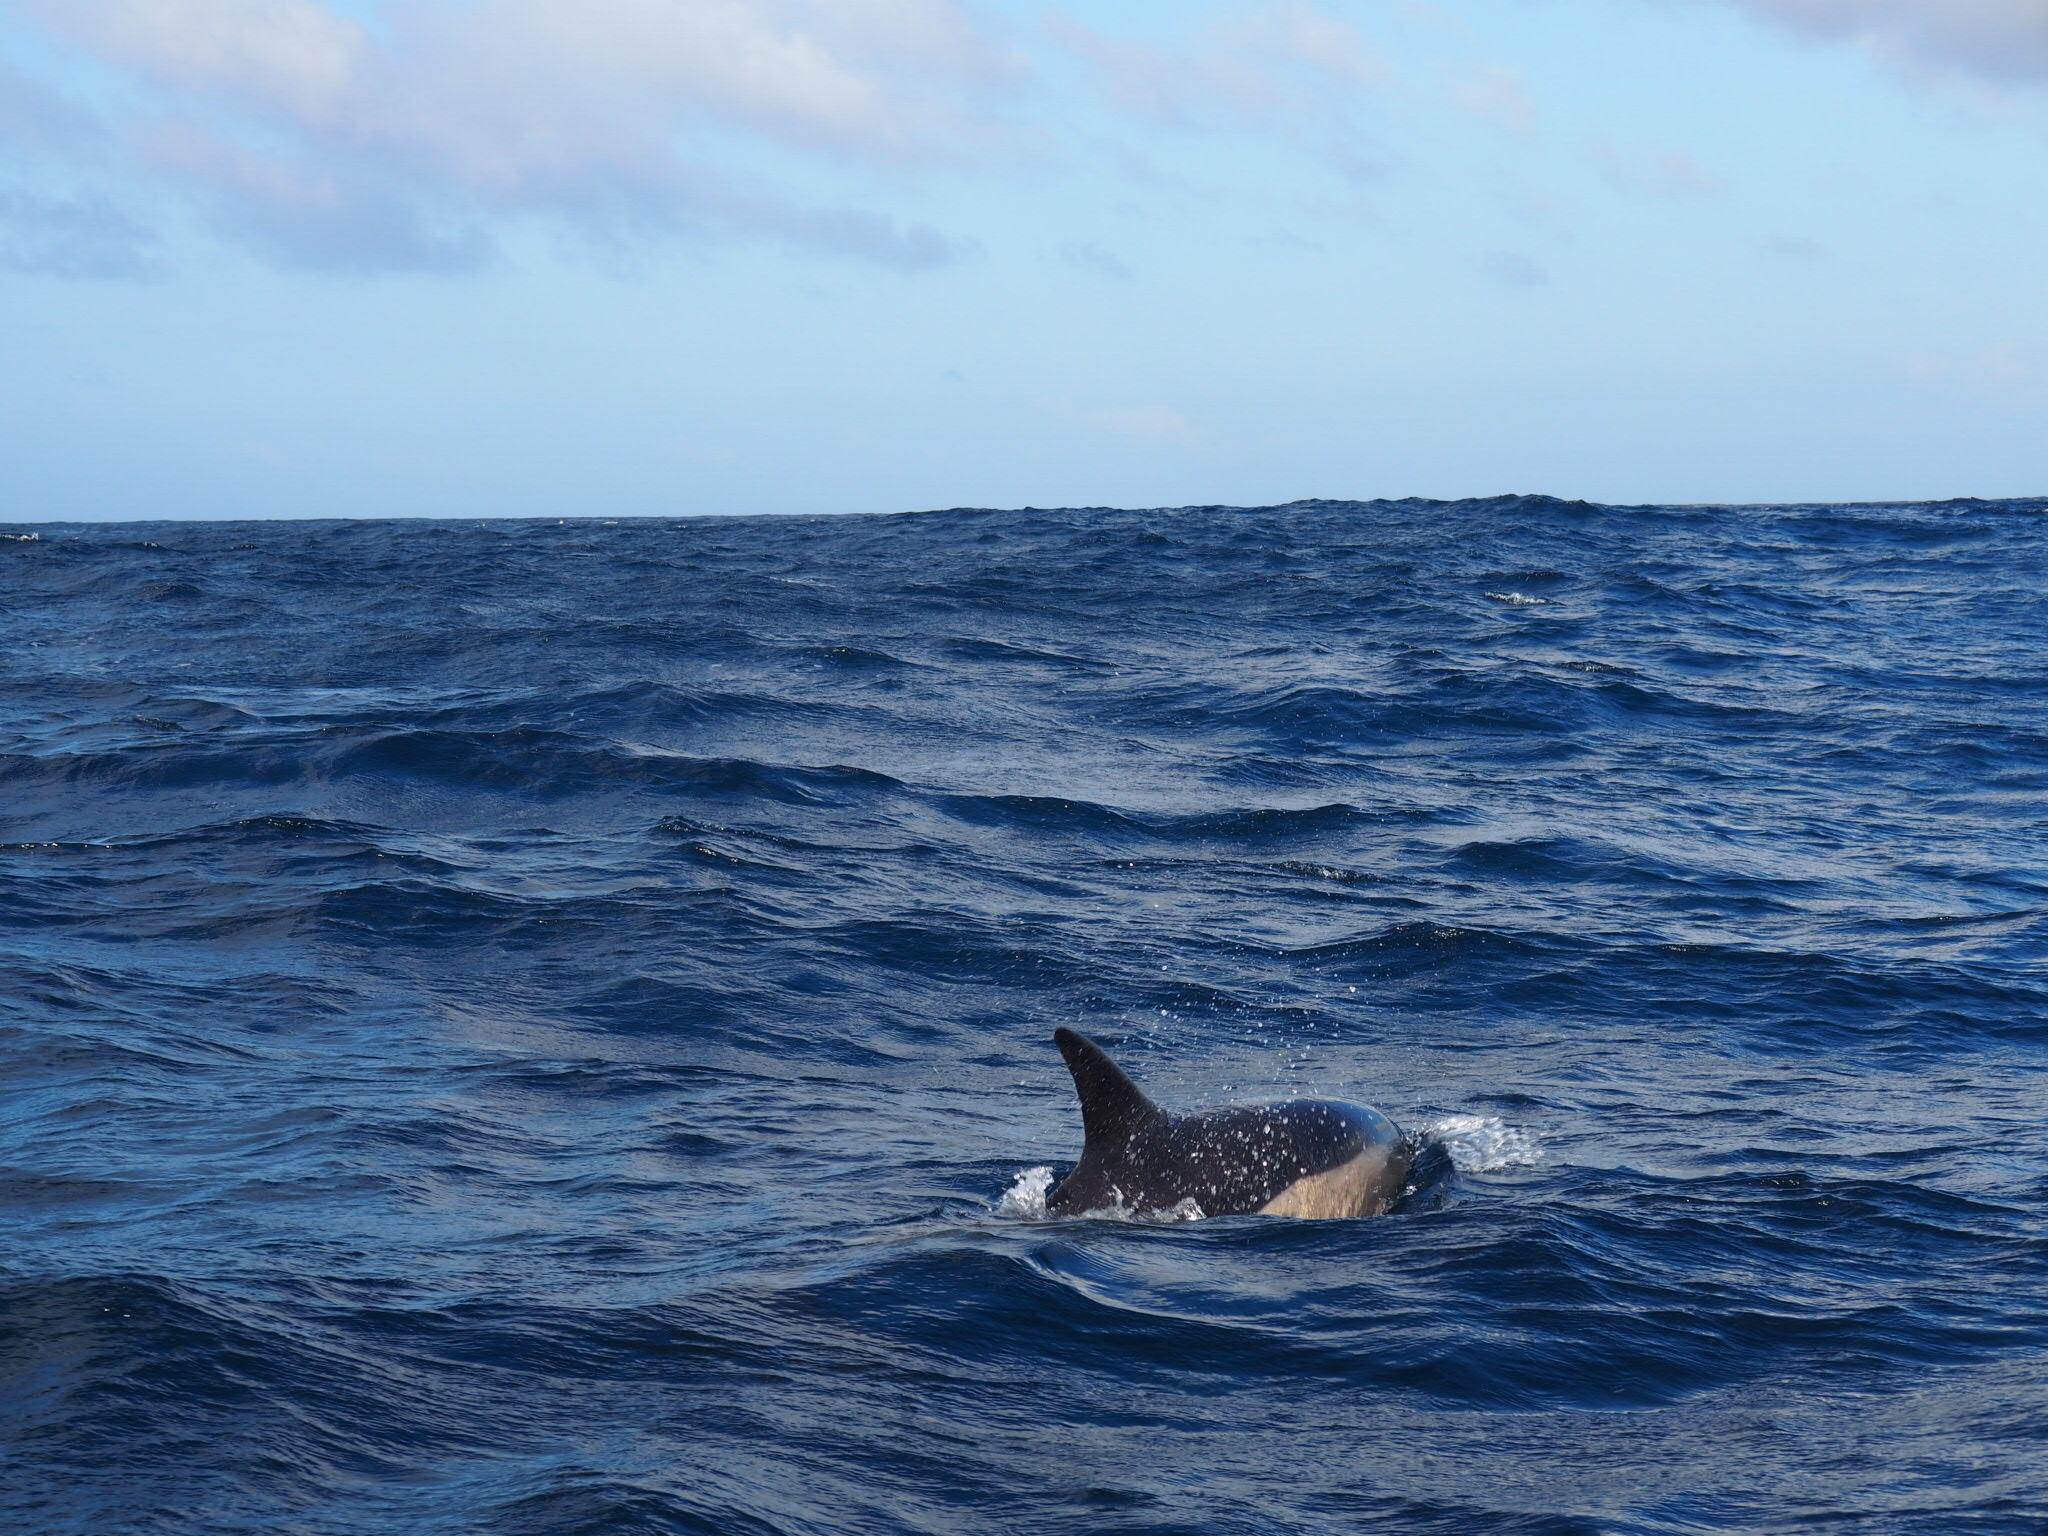 The common dolphin, whipping through the waves!